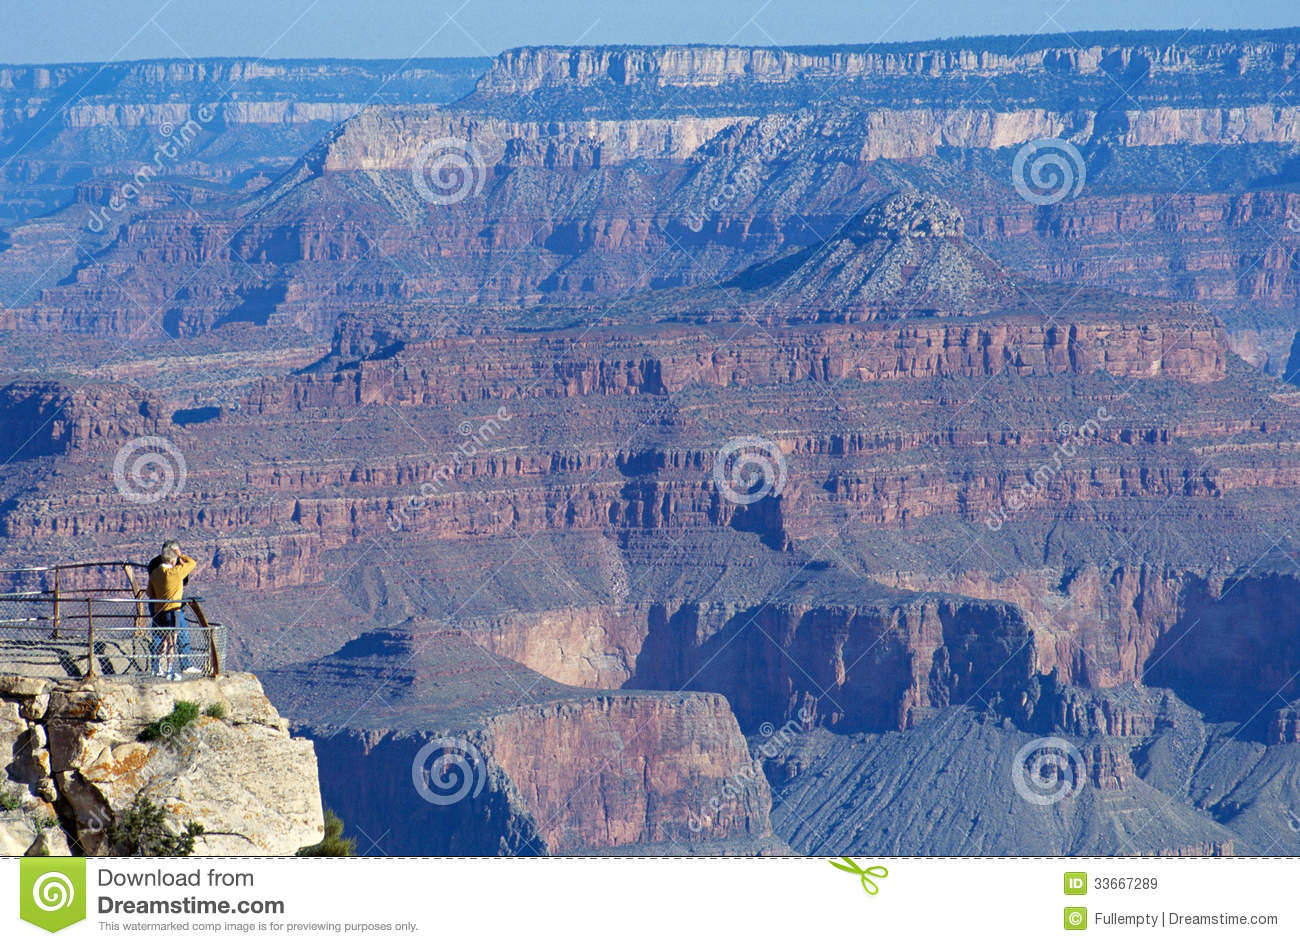 grand canyon senior singles Book bright angel lodge, grand canyon national park on tripadvisor: see 2,227 traveler reviews, 1,717 candid photos, and great deals for bright angel lodge, ranked #1 of 1 b&b / inn in grand canyon national park and rated 4 of 5 at tripadvisor.